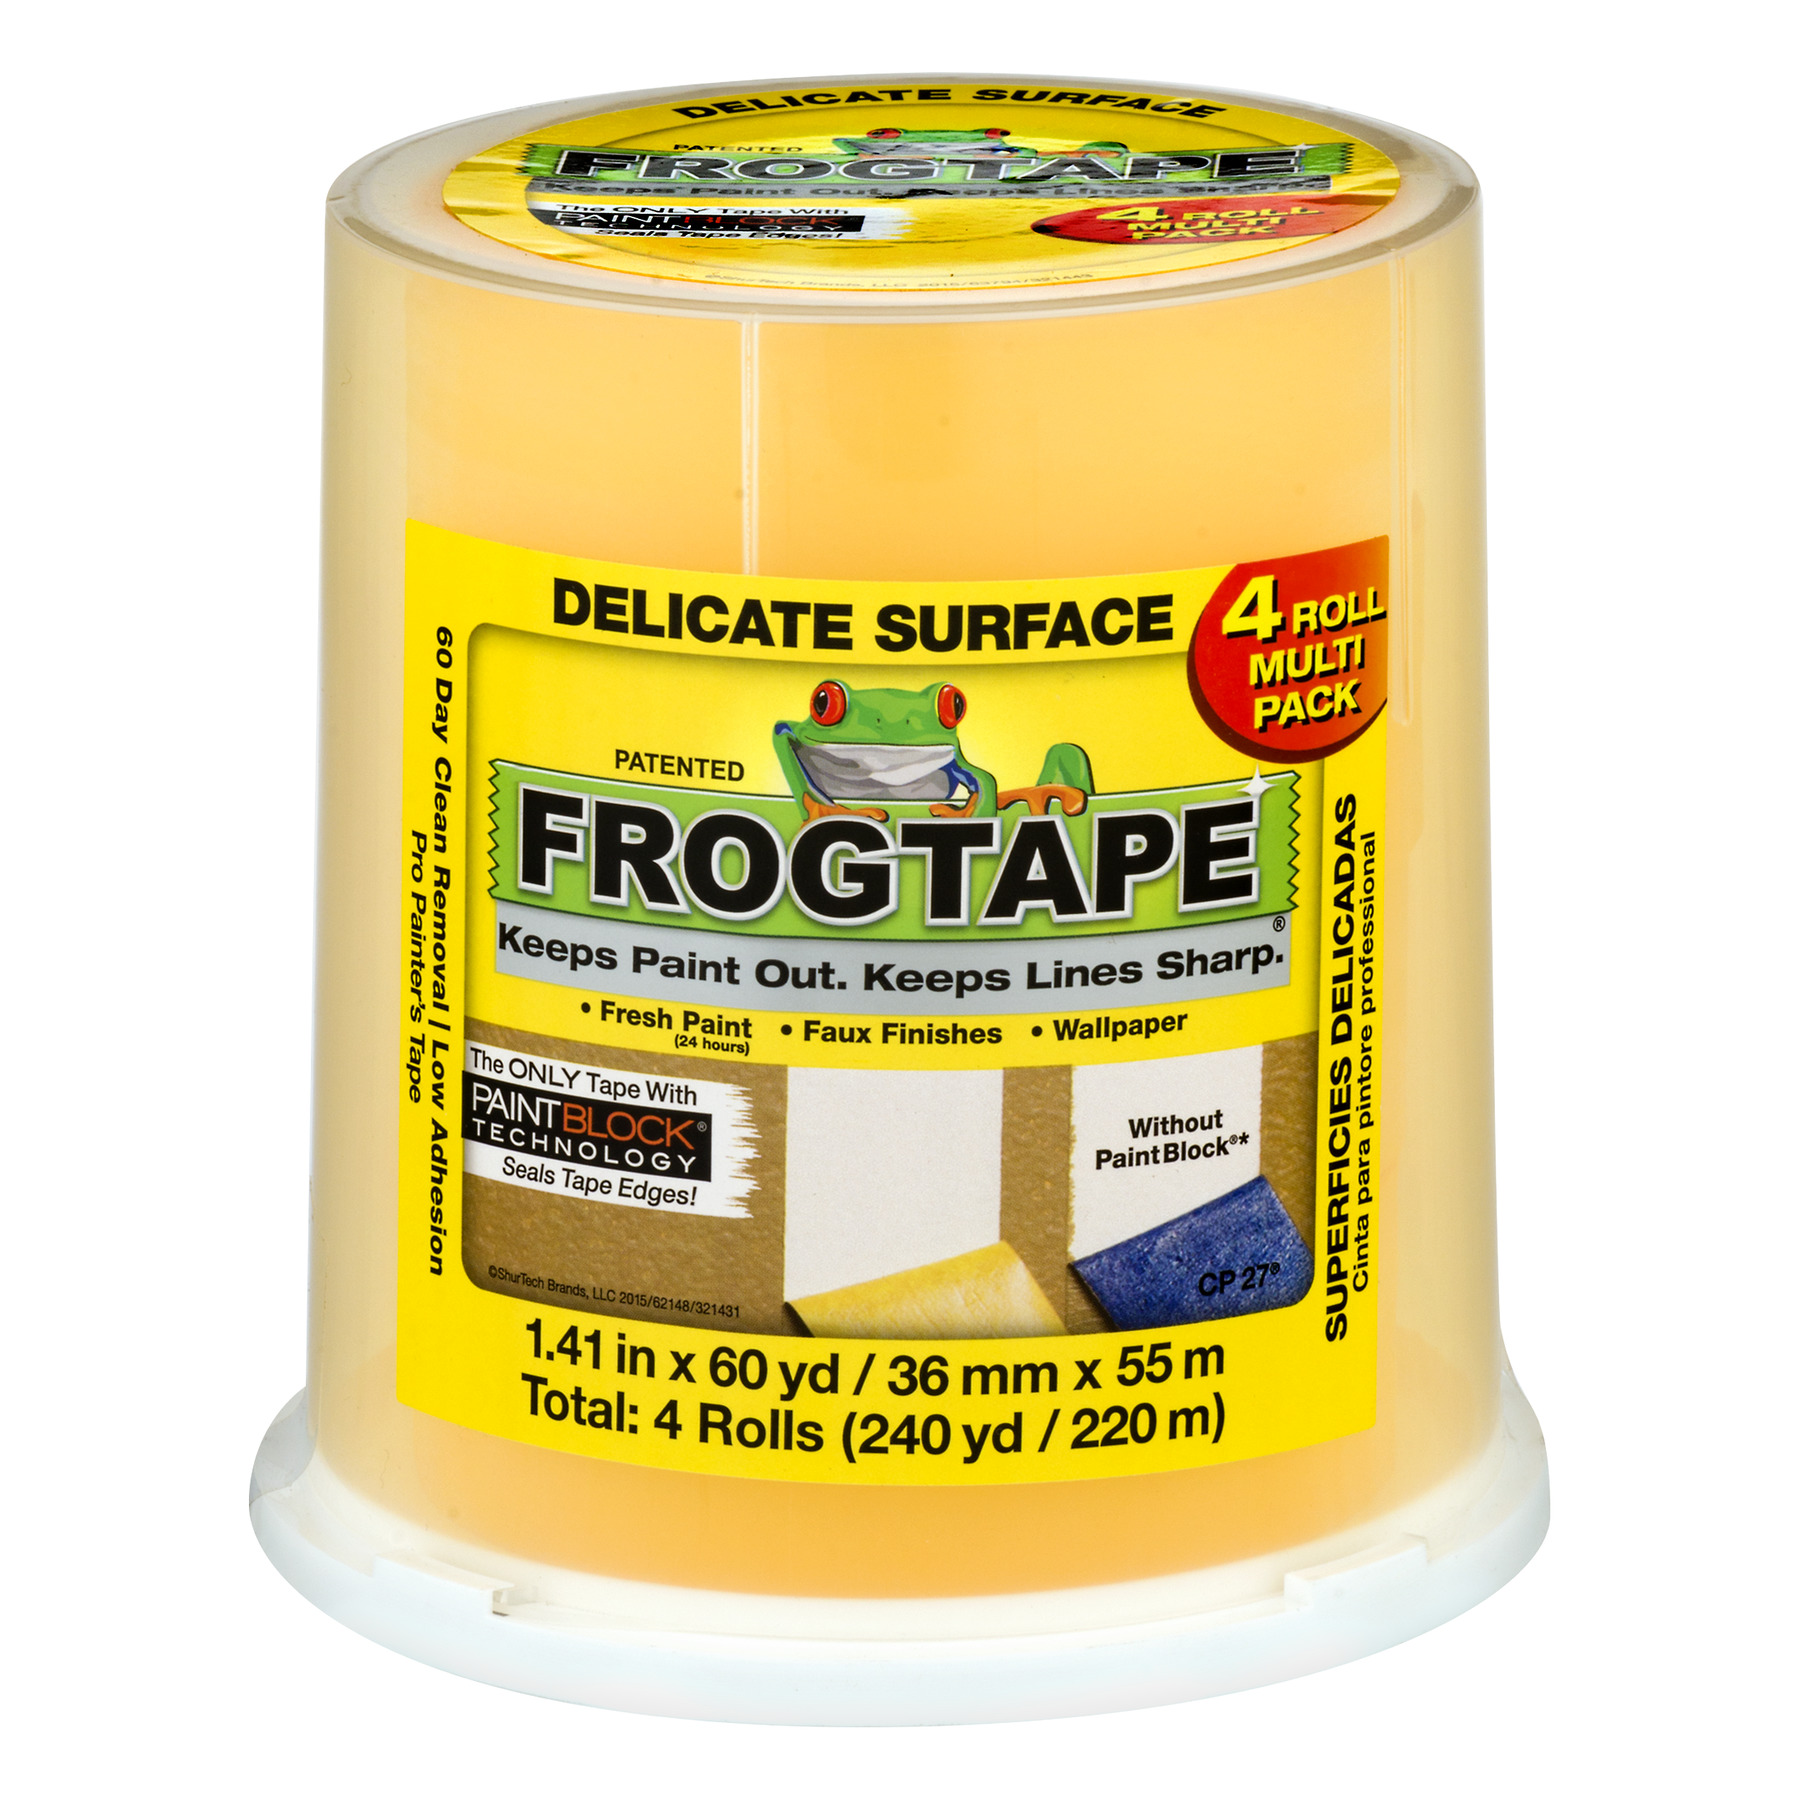 FrogTape Delicate Surface Yellow - 4 CT60.0 YARDS